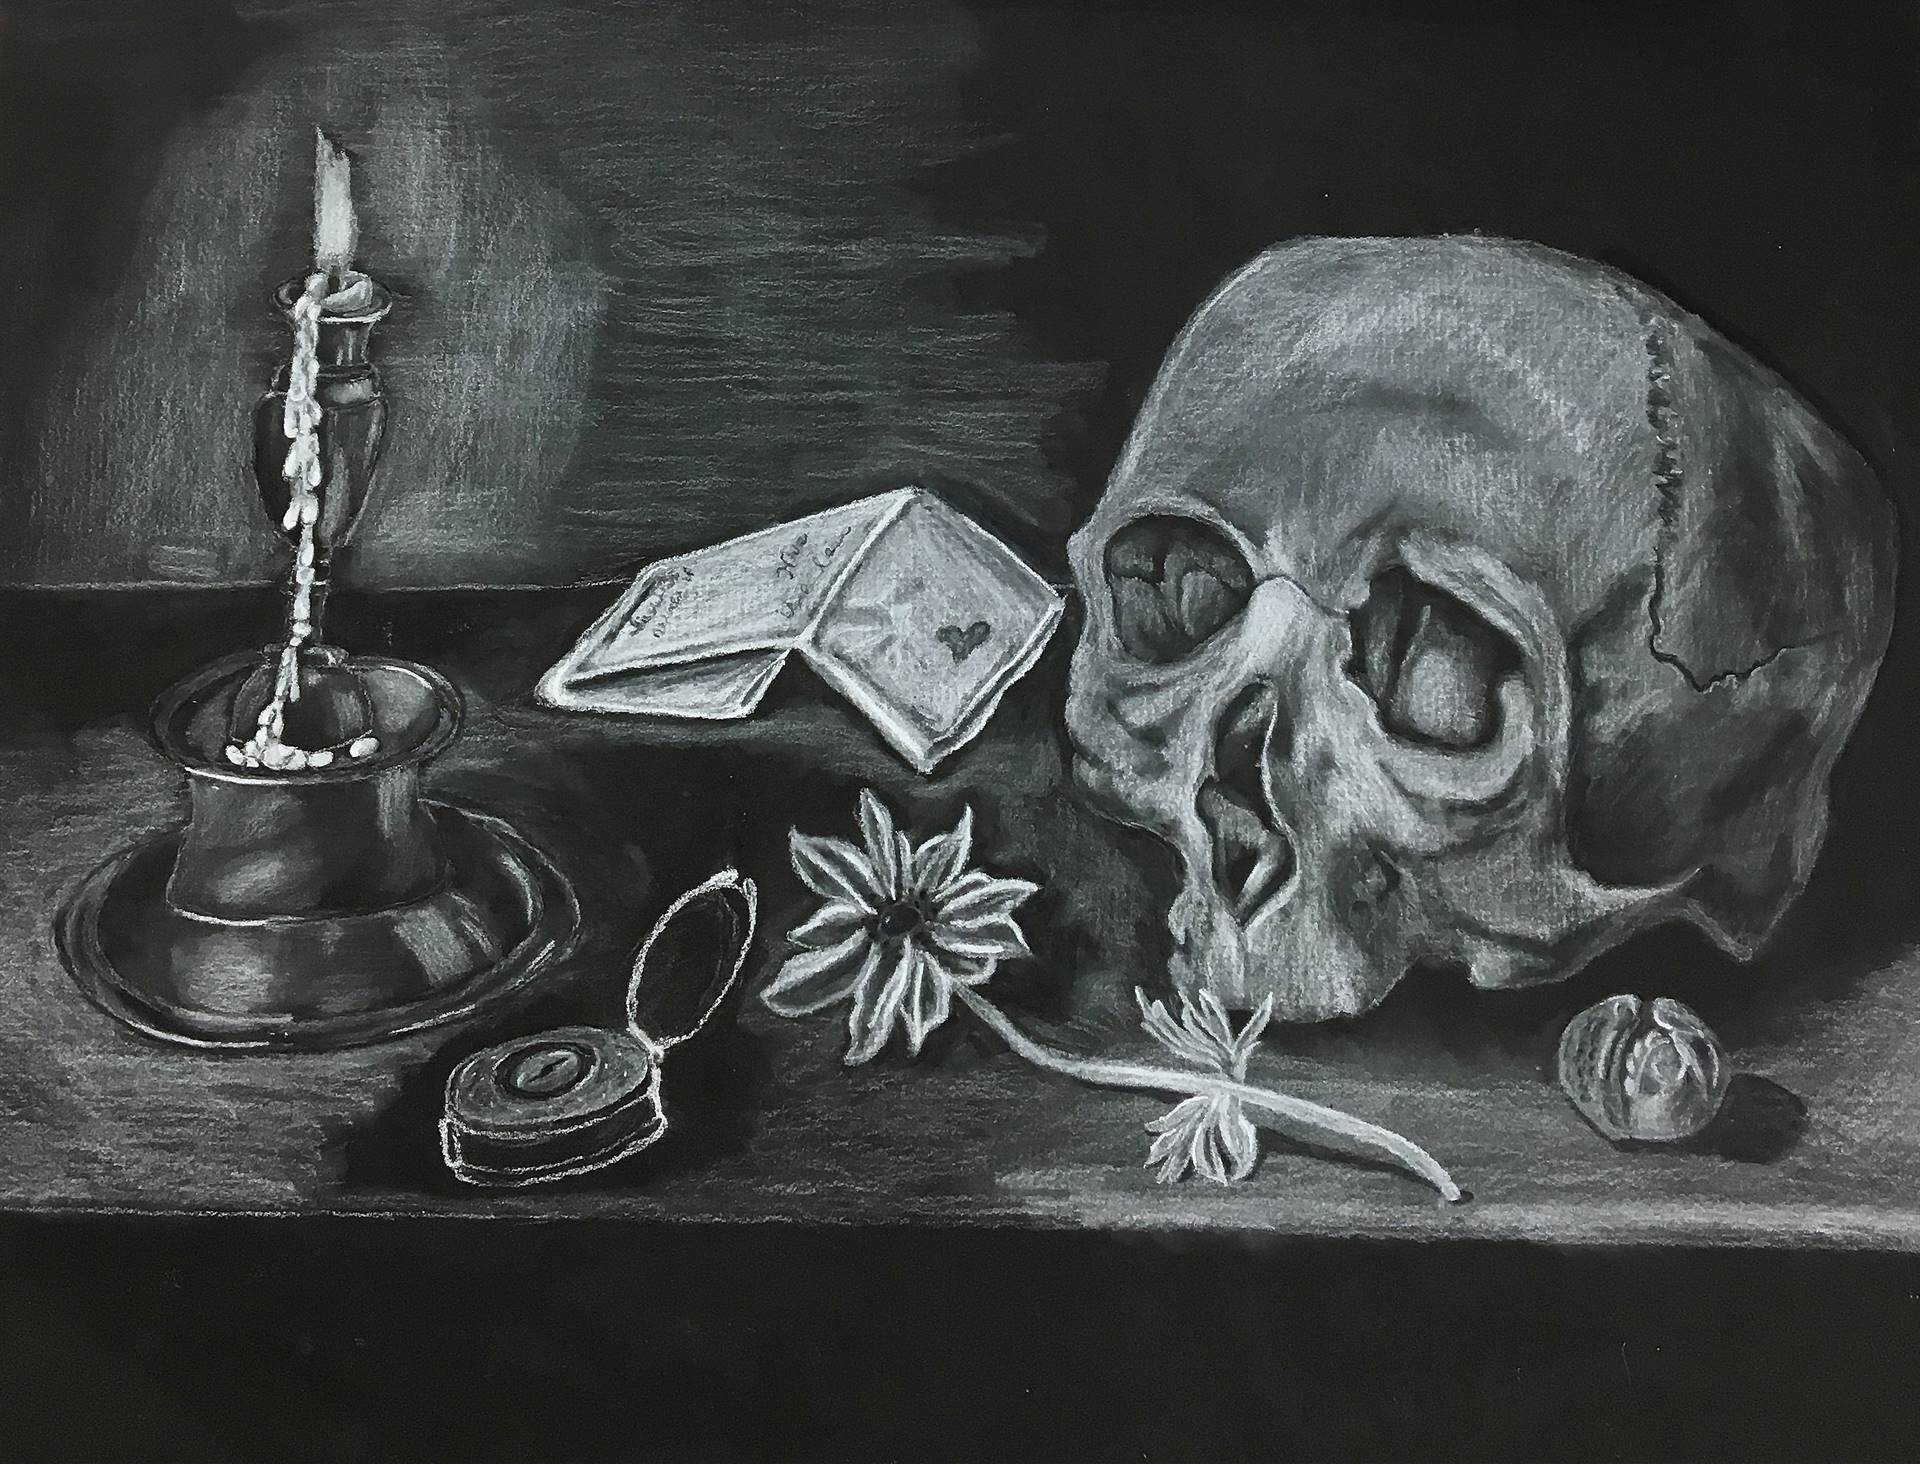 Charcoal drawing of a candle, pocket watch, flower, paper, and skull with a light source